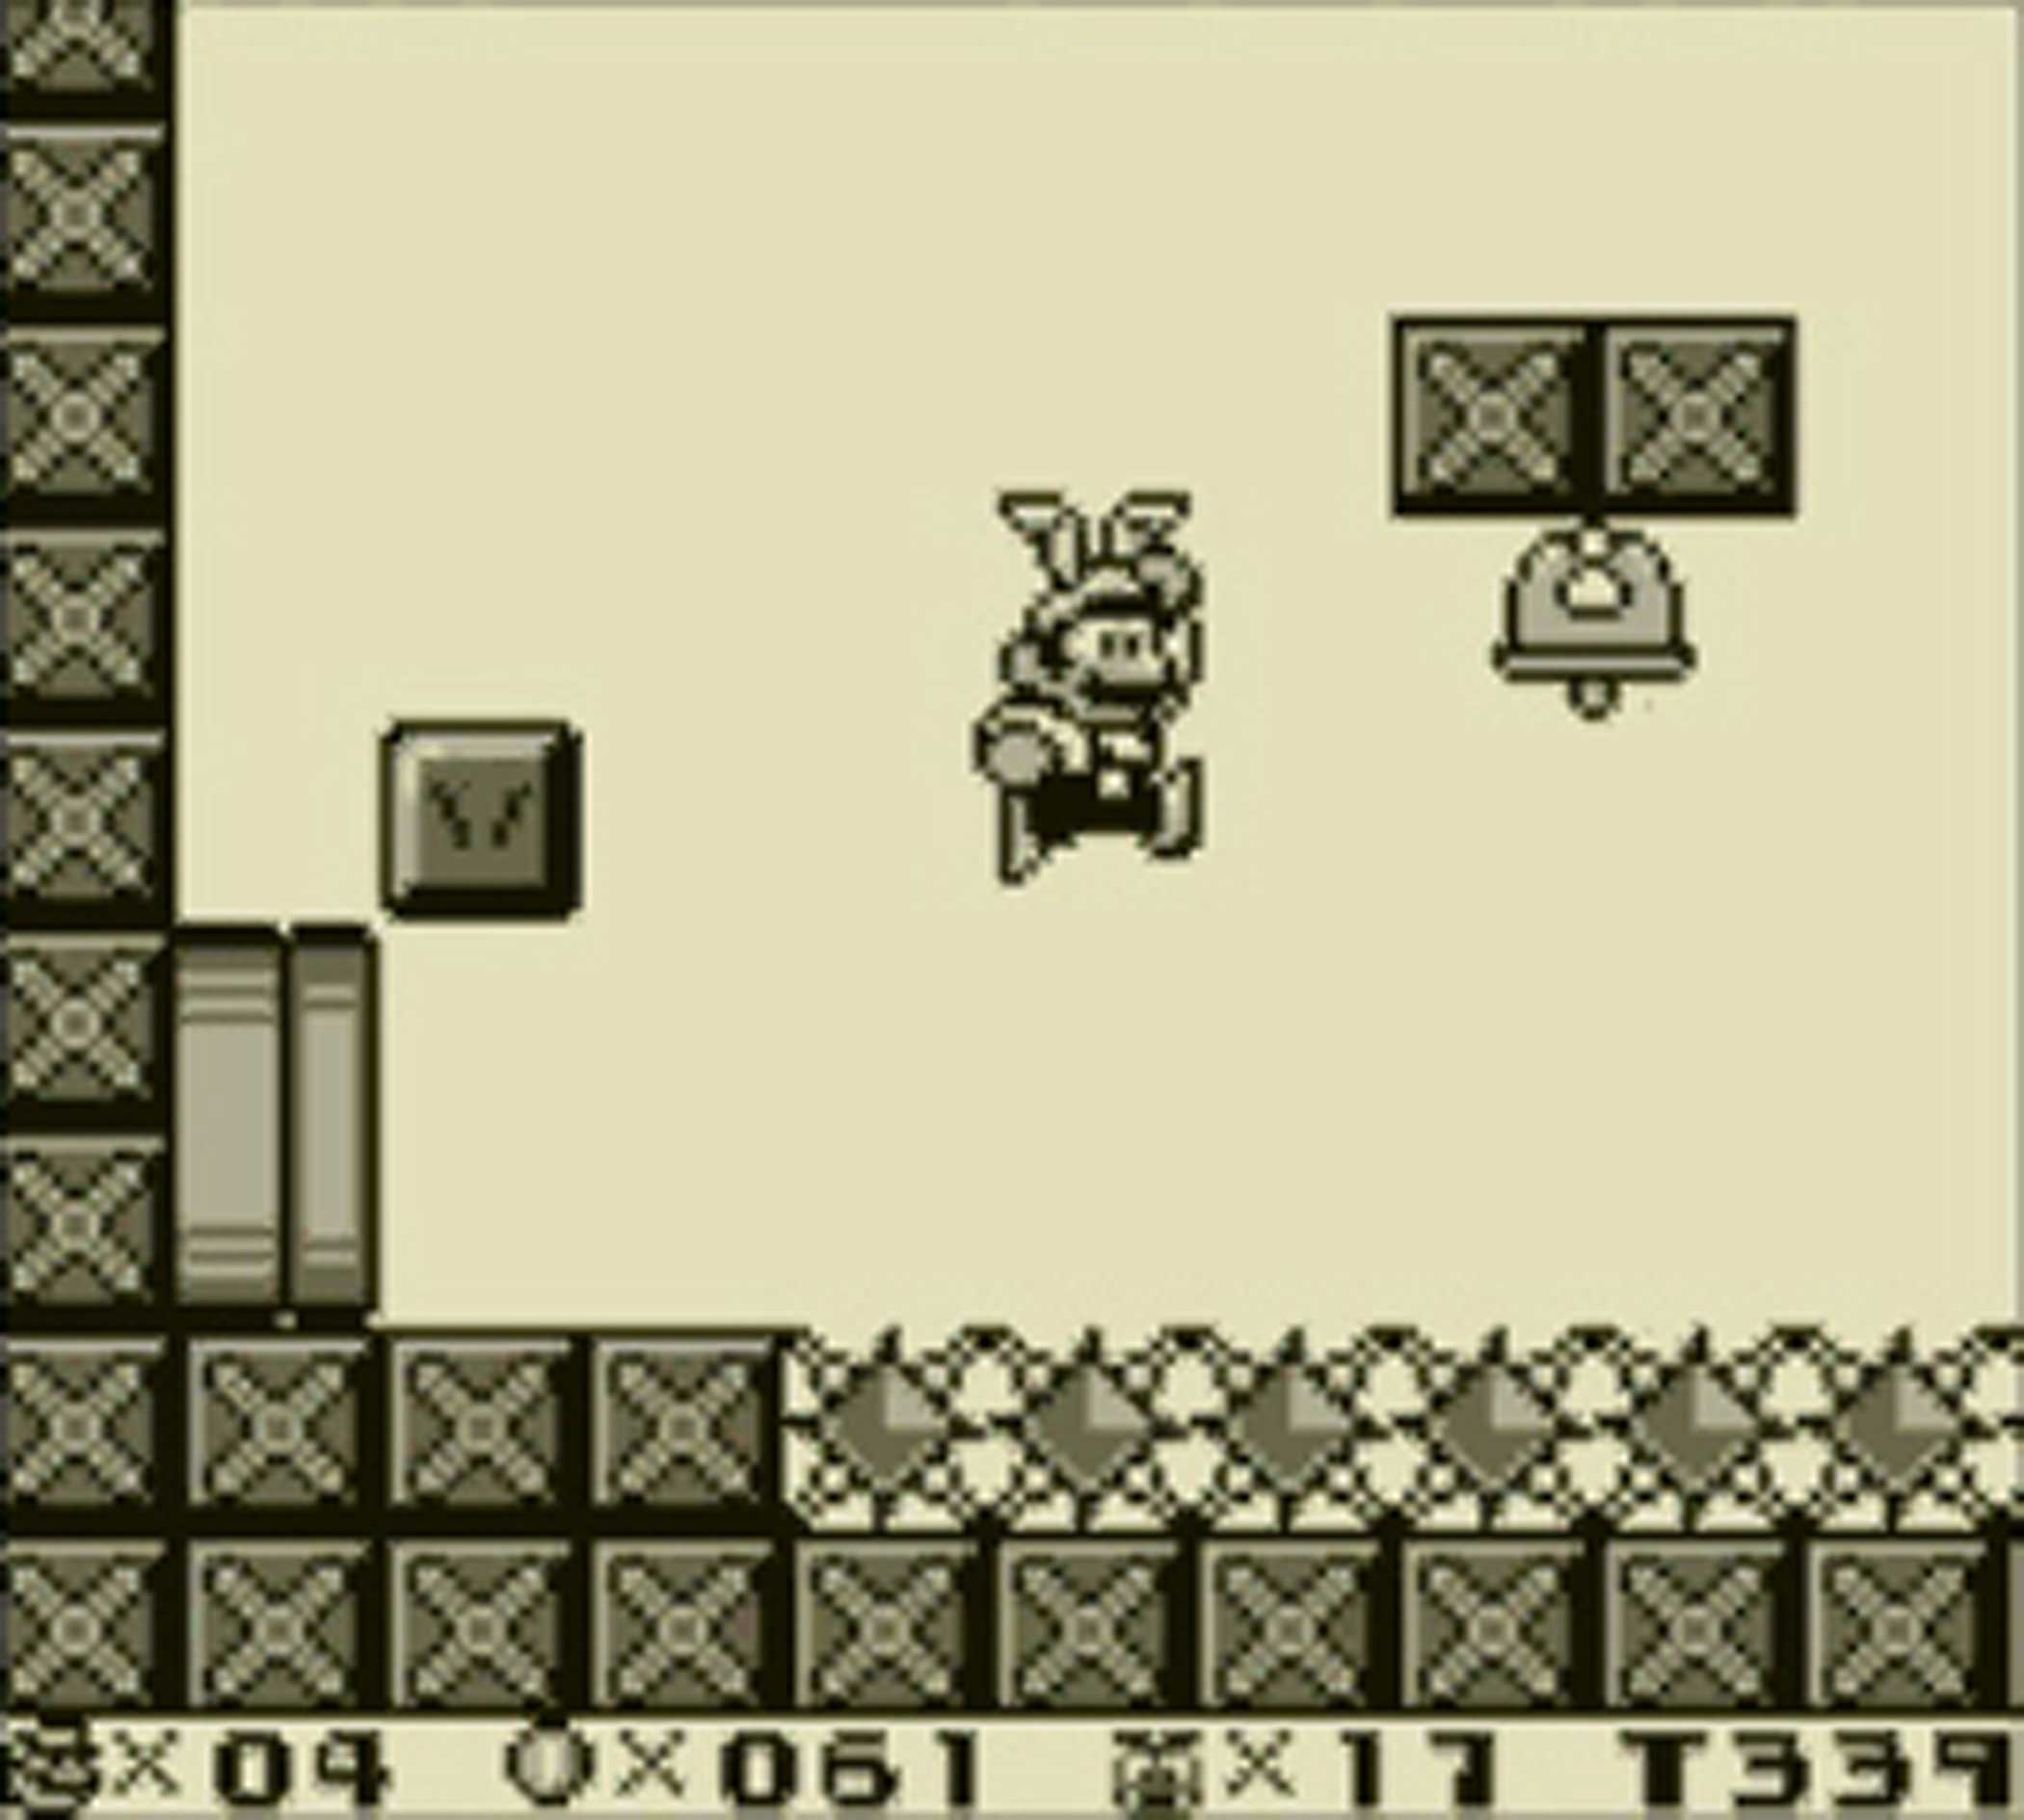 1992: Super Mario Land 2: 6 Golden Coins                                                              Mario's second Game Boy foray, Super Mario Land 2 pushed the handheld's cartridge format to capacity, weighing in at a then-whopping 4 megabits--eight times larger than its predecessor.